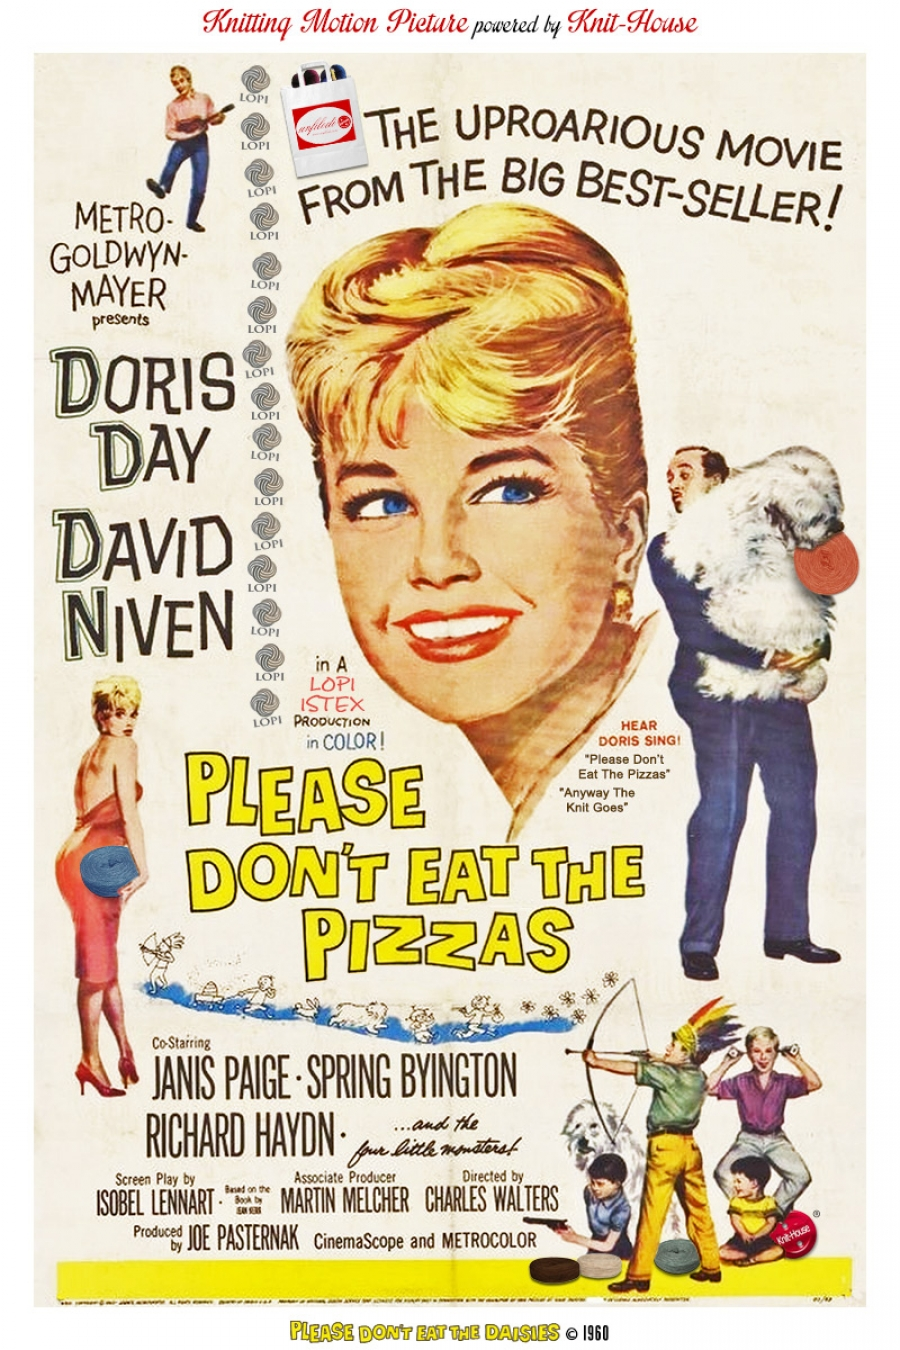 Please Don't Eat the Pizzas - 1960